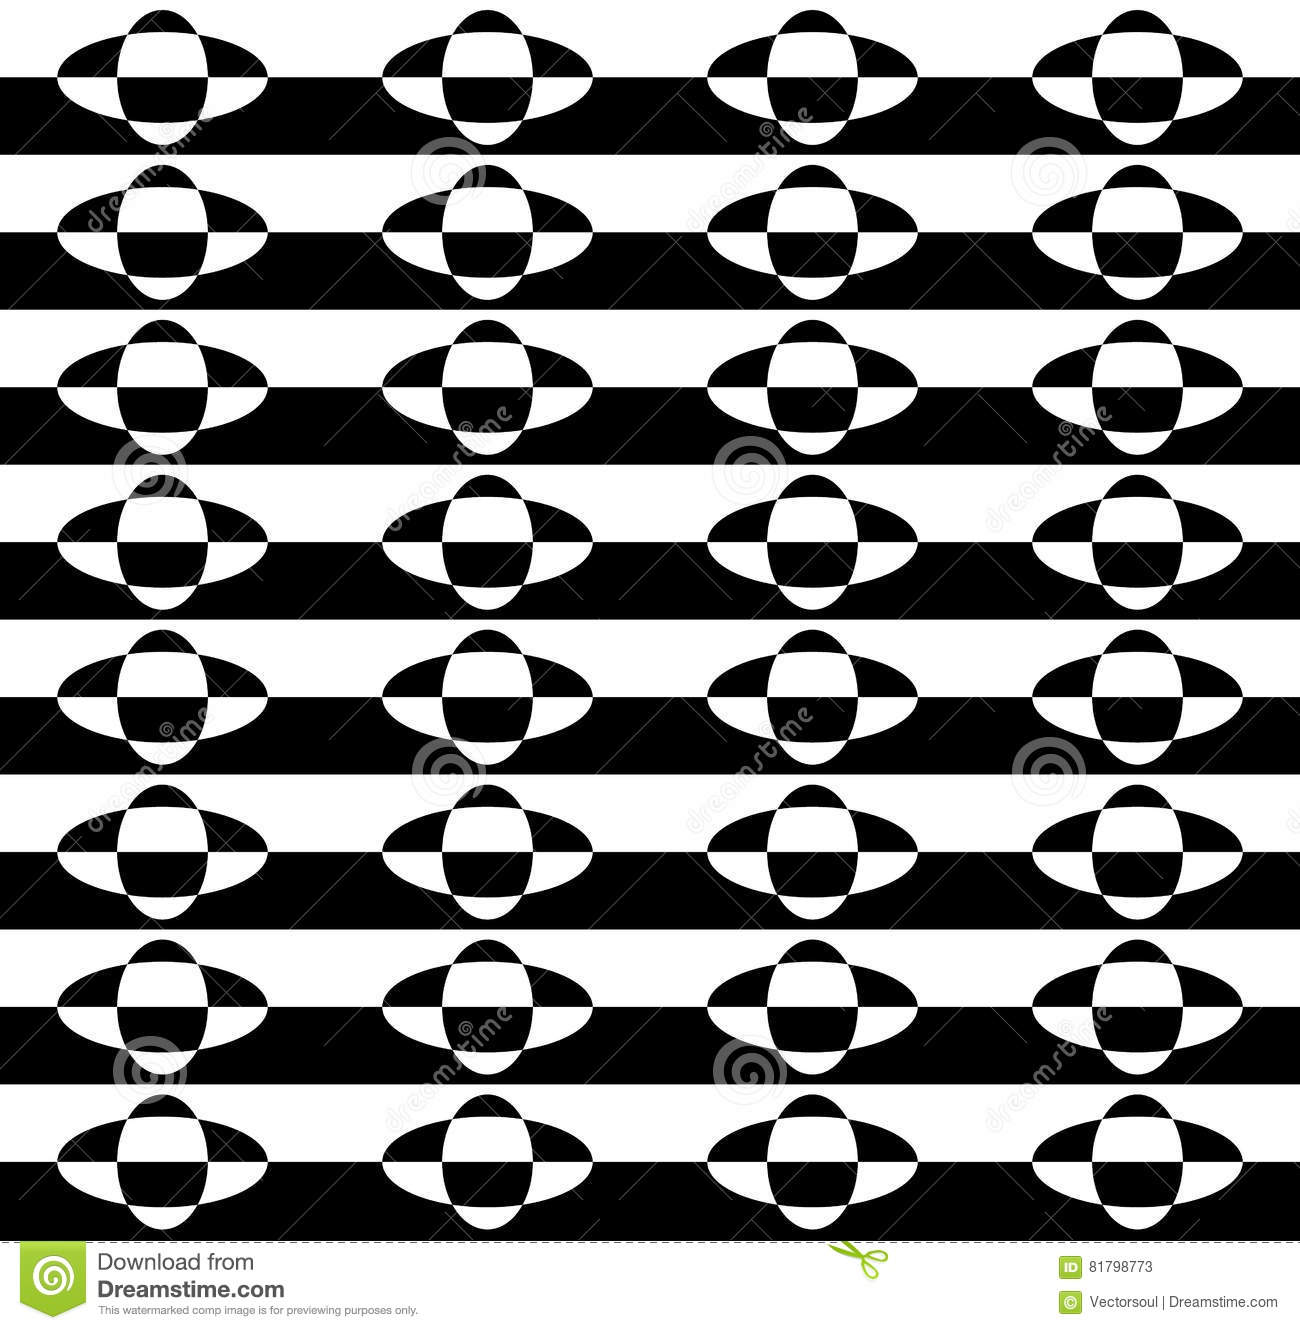 Marble like repetitive, geometric pattern. See more versions in